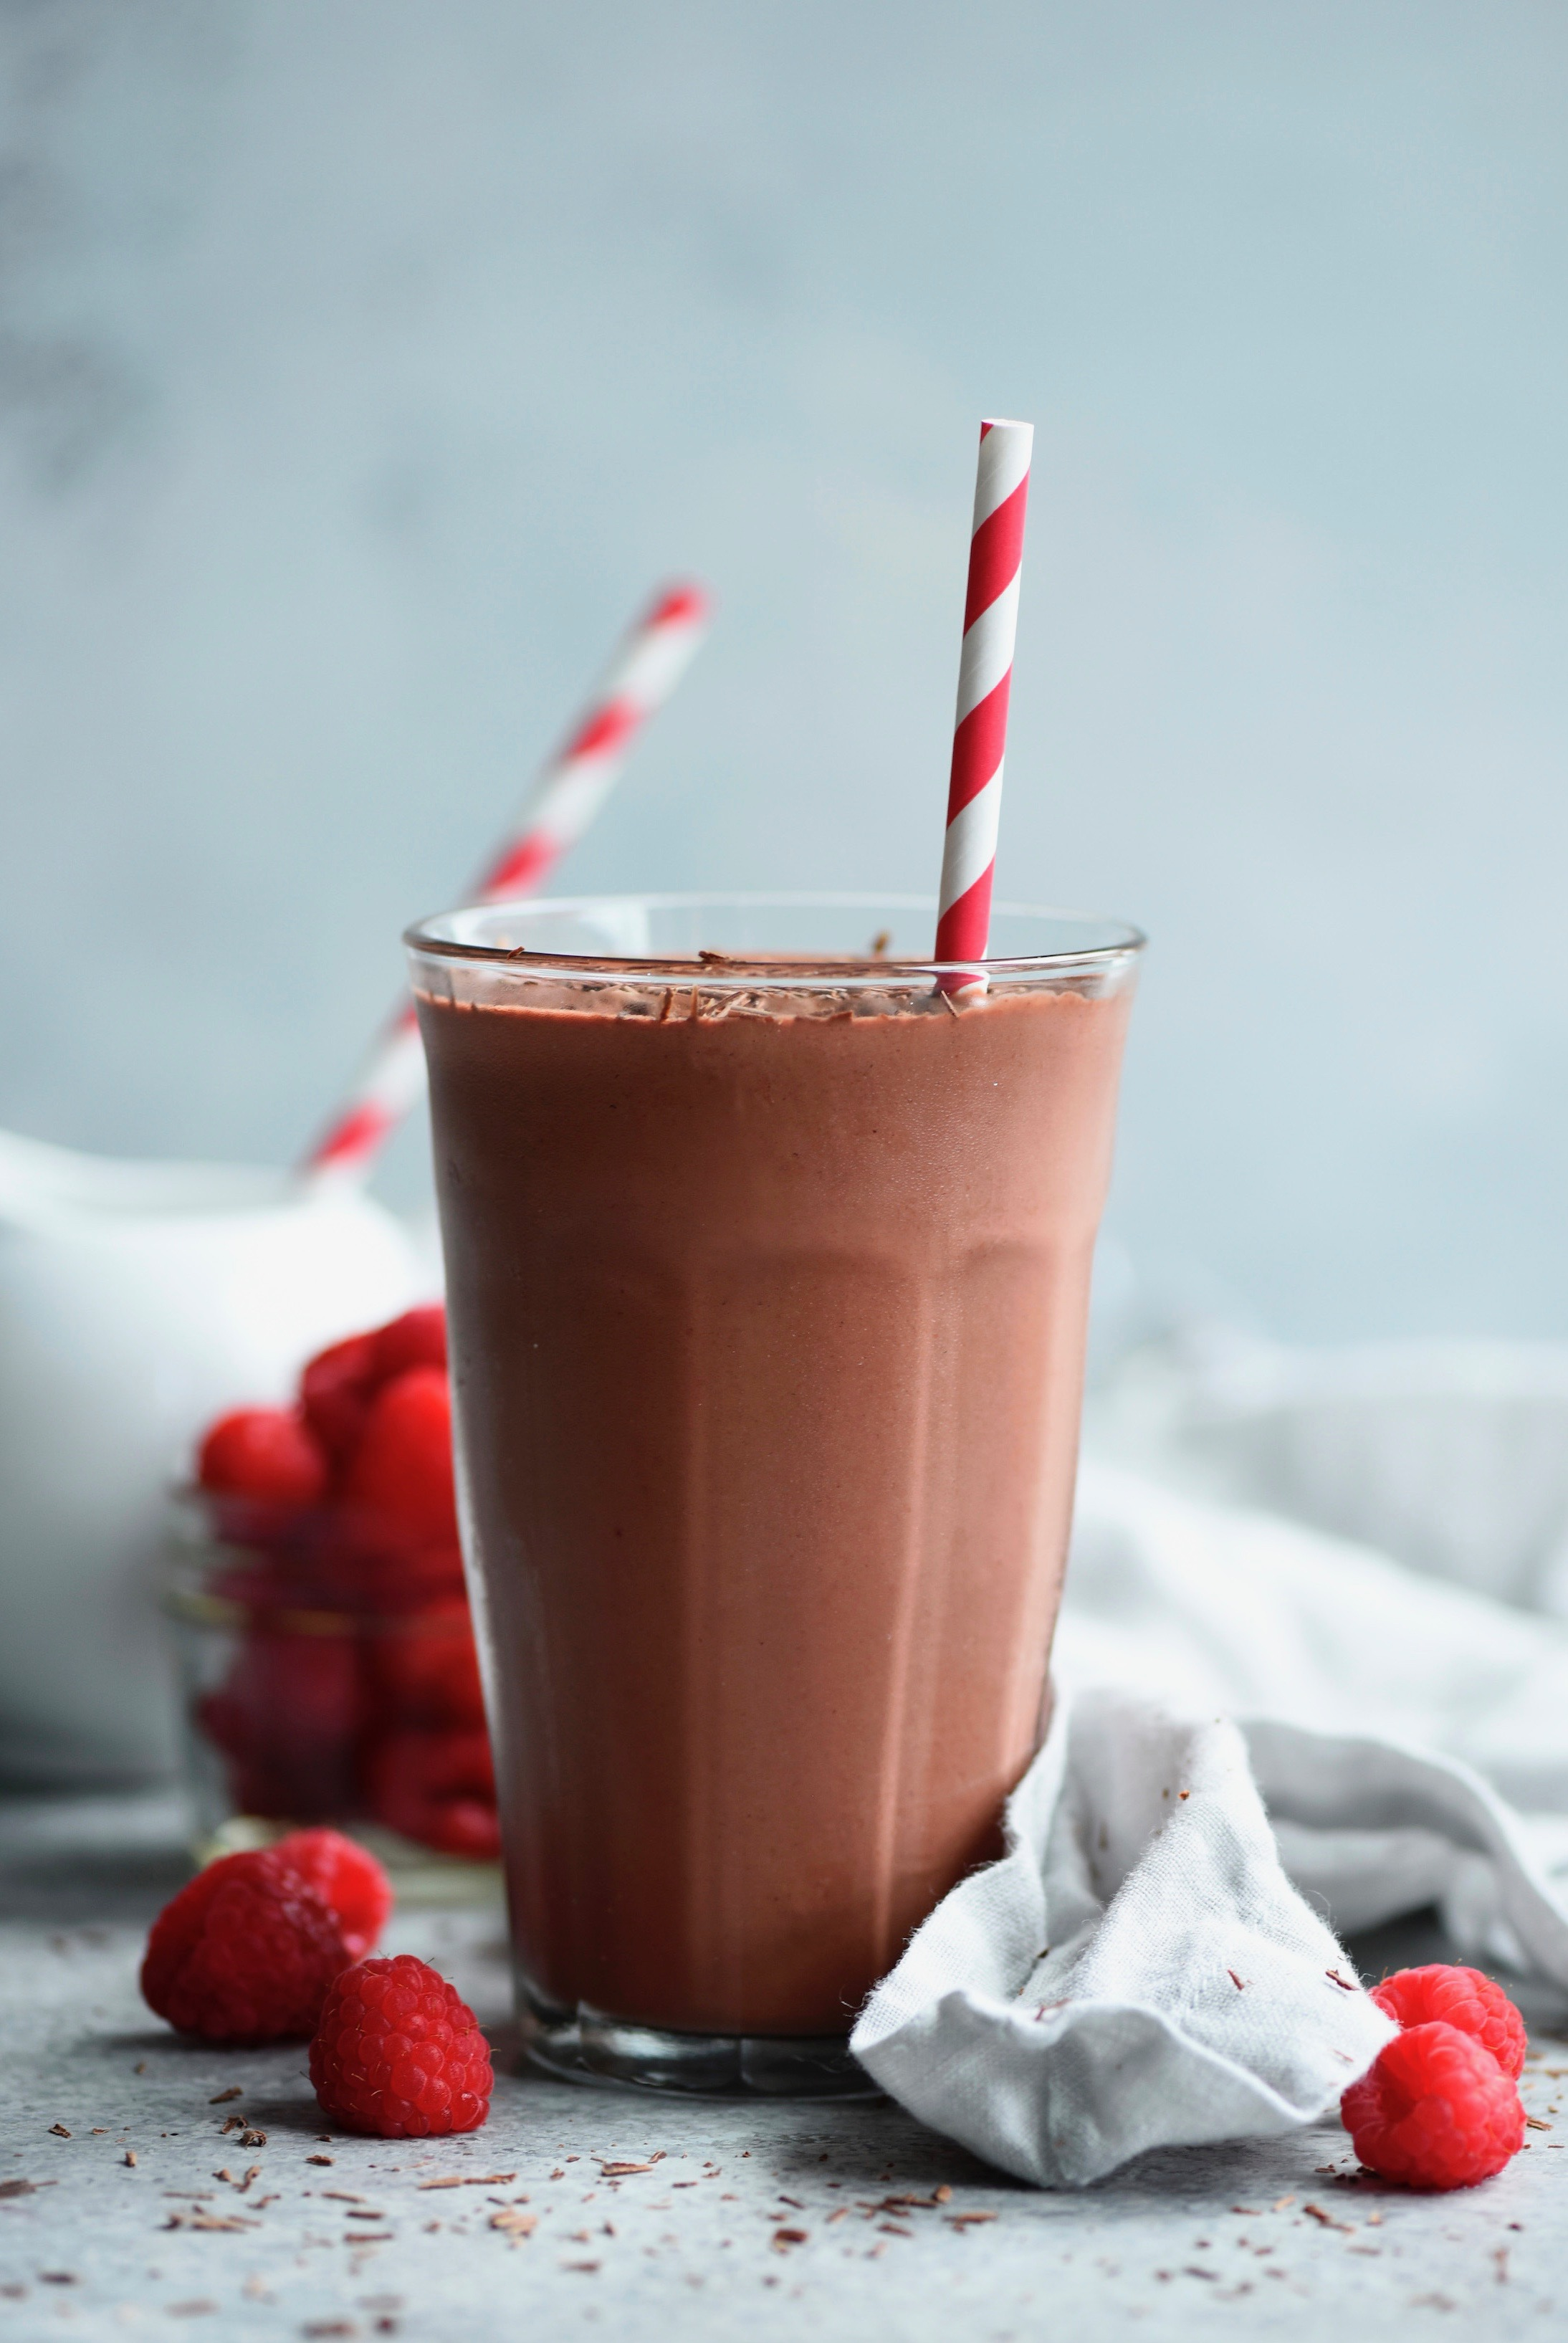 Red Velvet Smoothie with FlavaNaturals Unsweetened Drinking Chocolate, 900mg Cocoa Flavanols